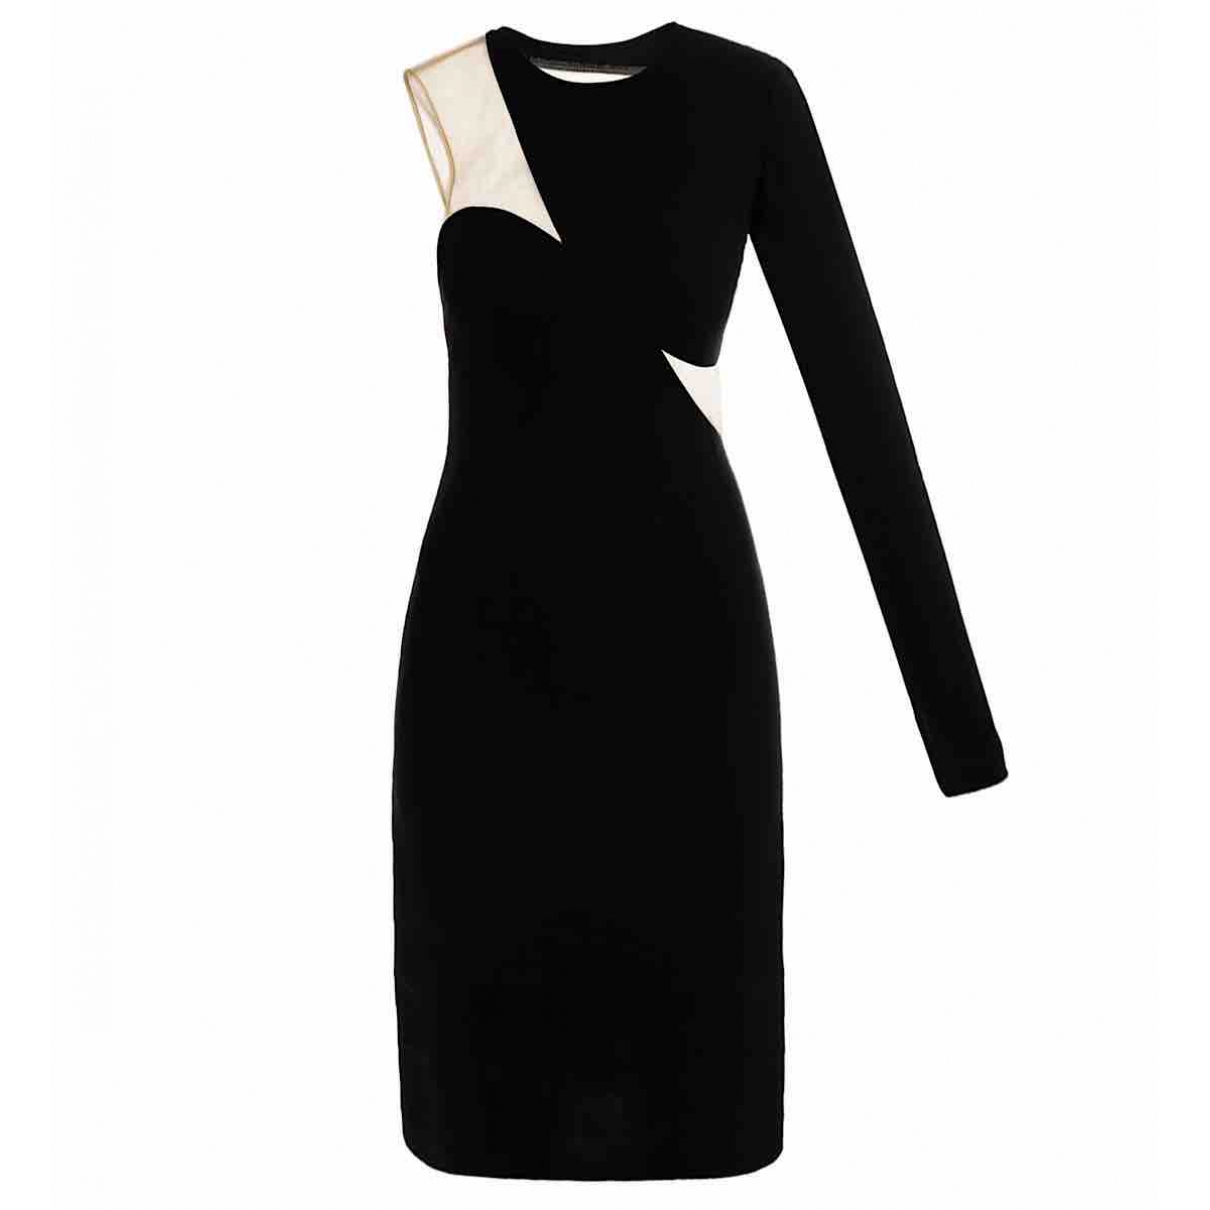 Stella Mccartney \N Kleid in  Schwarz Viskose